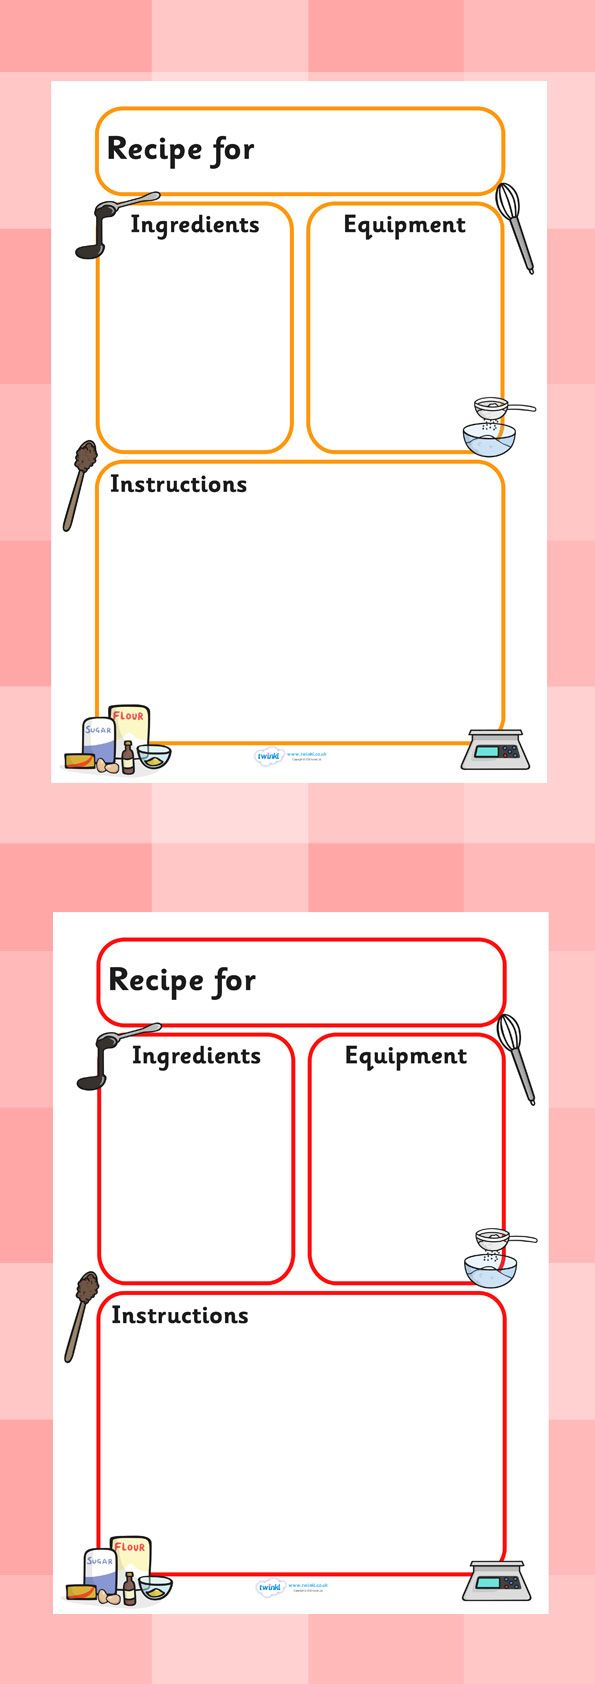 Twinkl resources recipe templates classroom printables for pre twinkl resources recipe templates classroom printables for pre school kindergarten elementary school and beyond topics food recipes cooking forumfinder Gallery